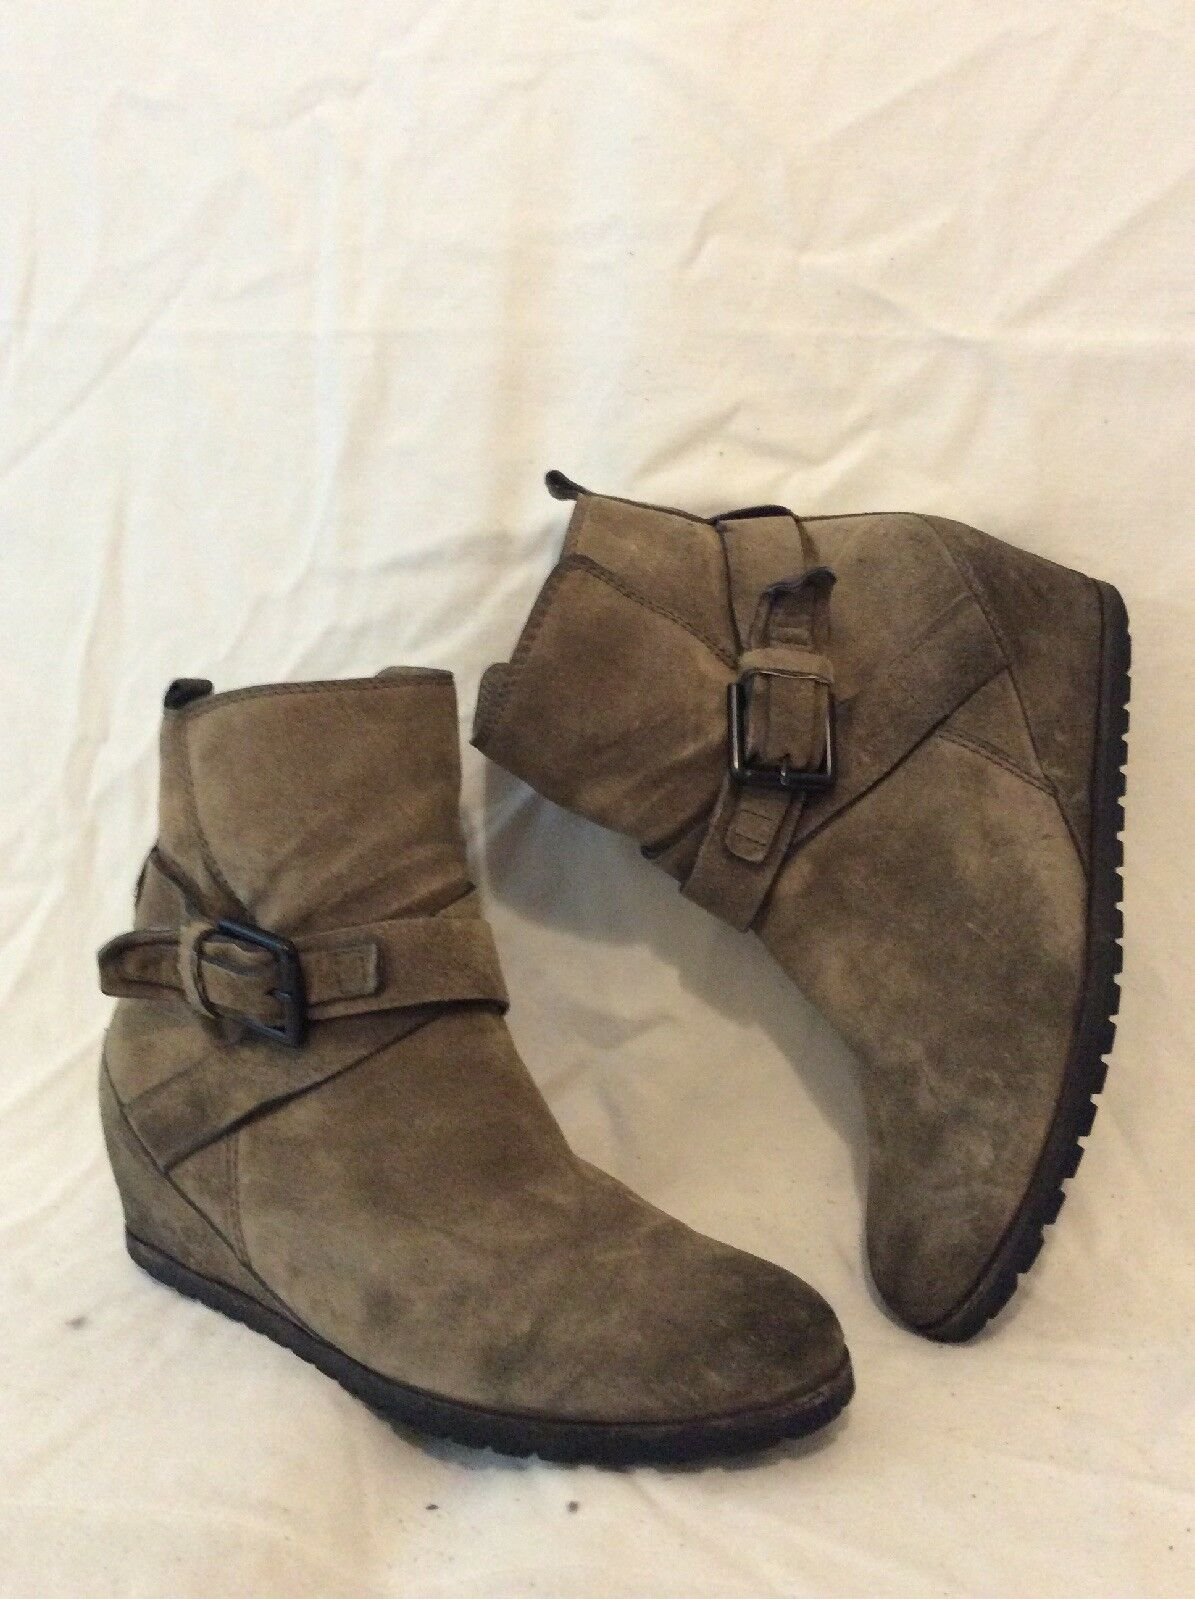 Kennel Schmenger Brown Ankle Suede Boots Size 5.5